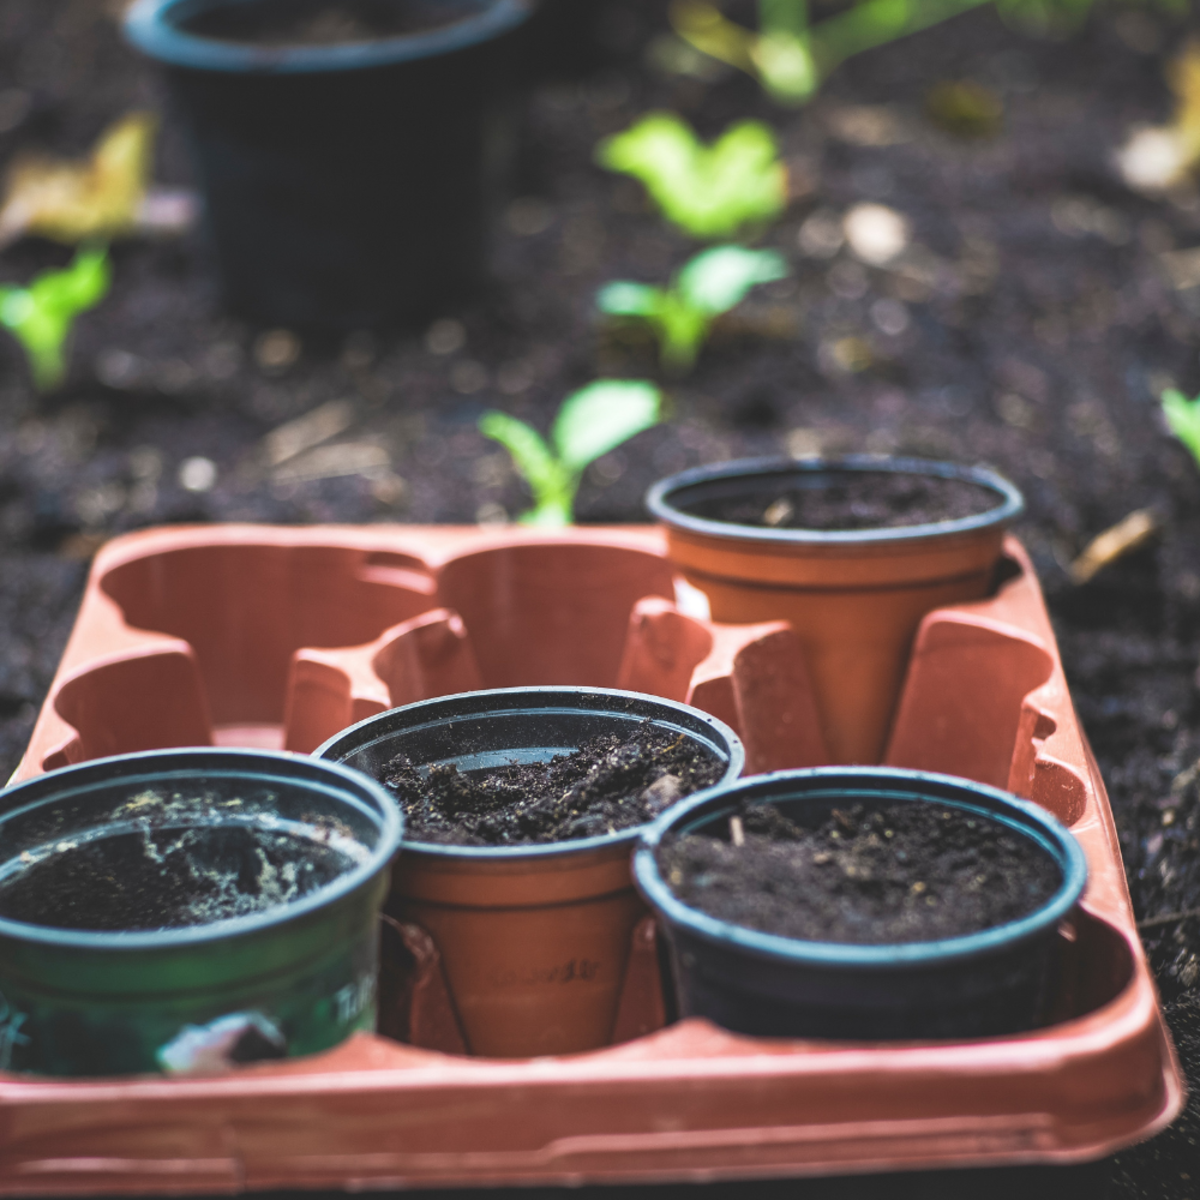 Here's how you can re-use old compost left in containers or bags.